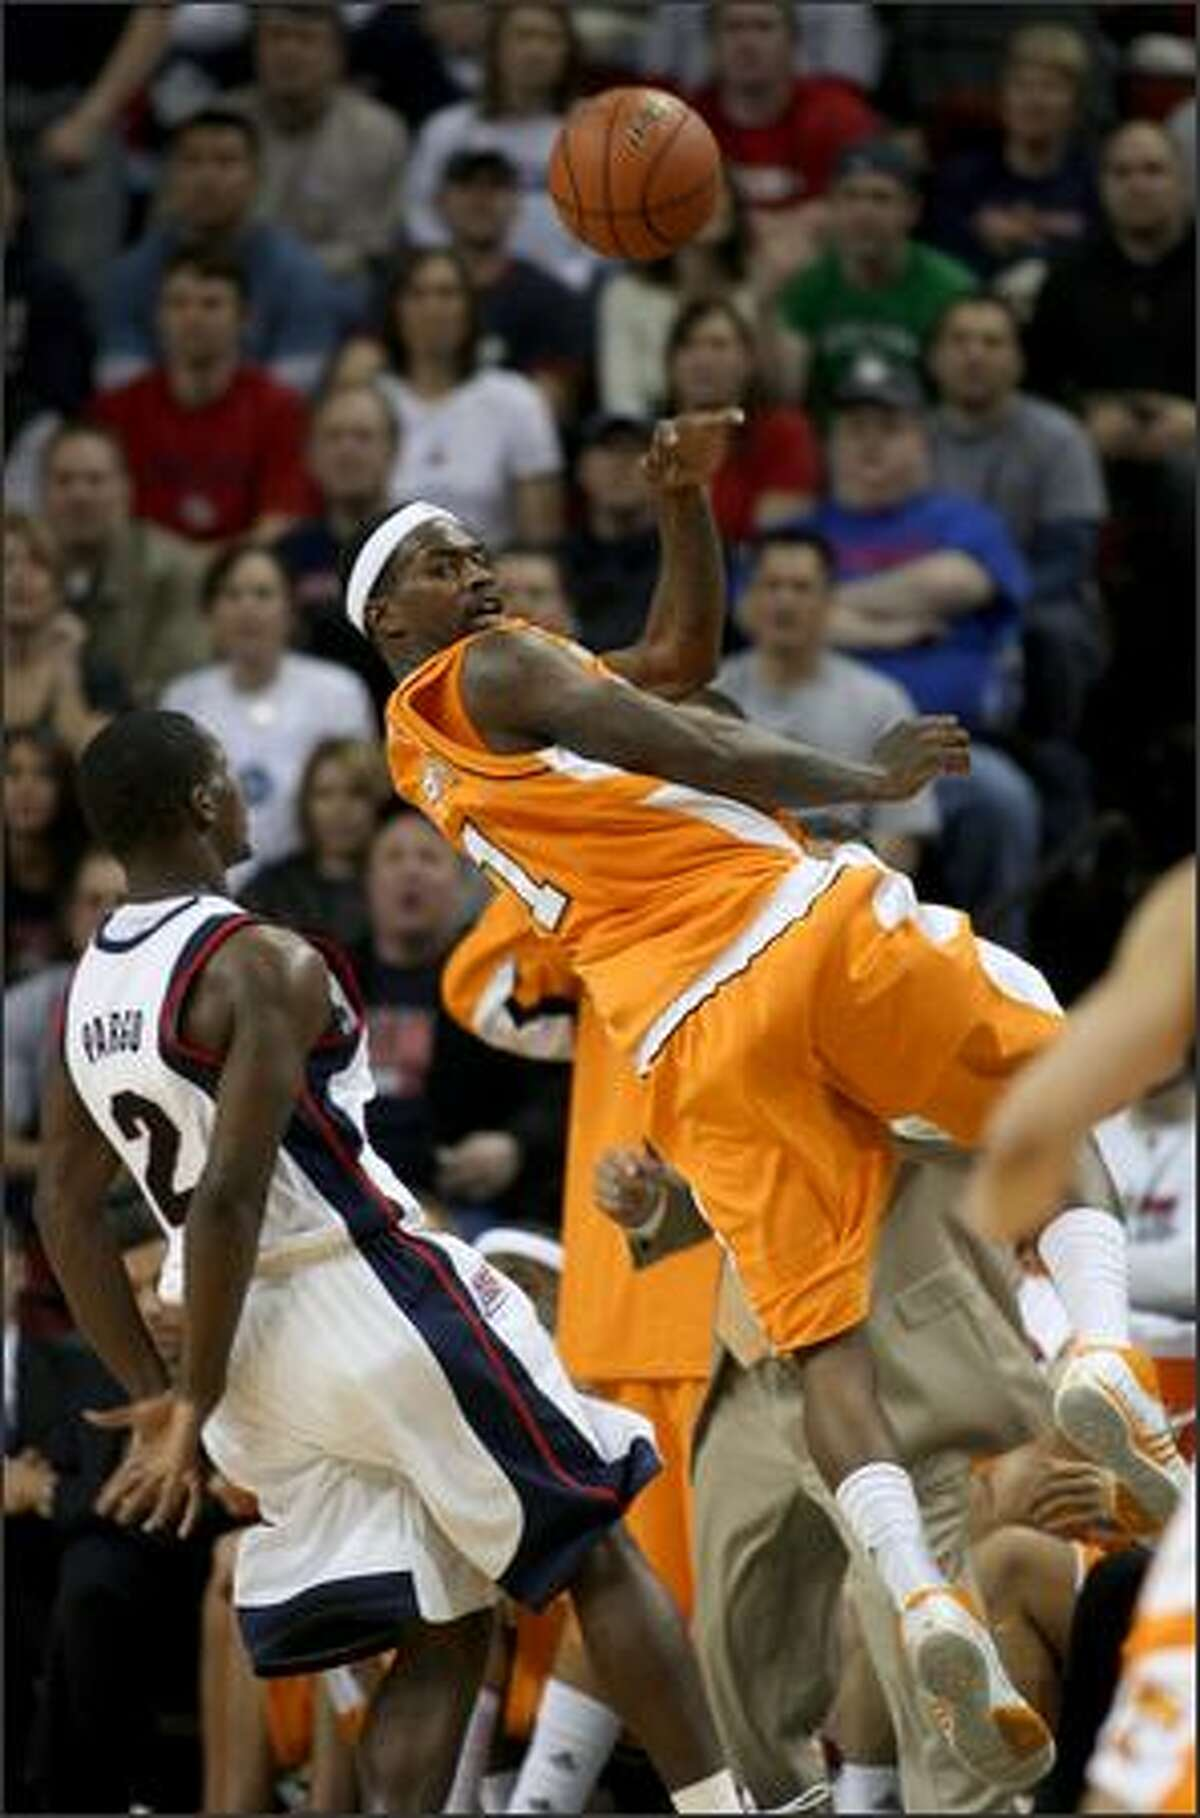 Gonzaga junior Jeremy Pargo steps away as Tennessee sophomore Tyler Smith saves the ball from going out of bounds.